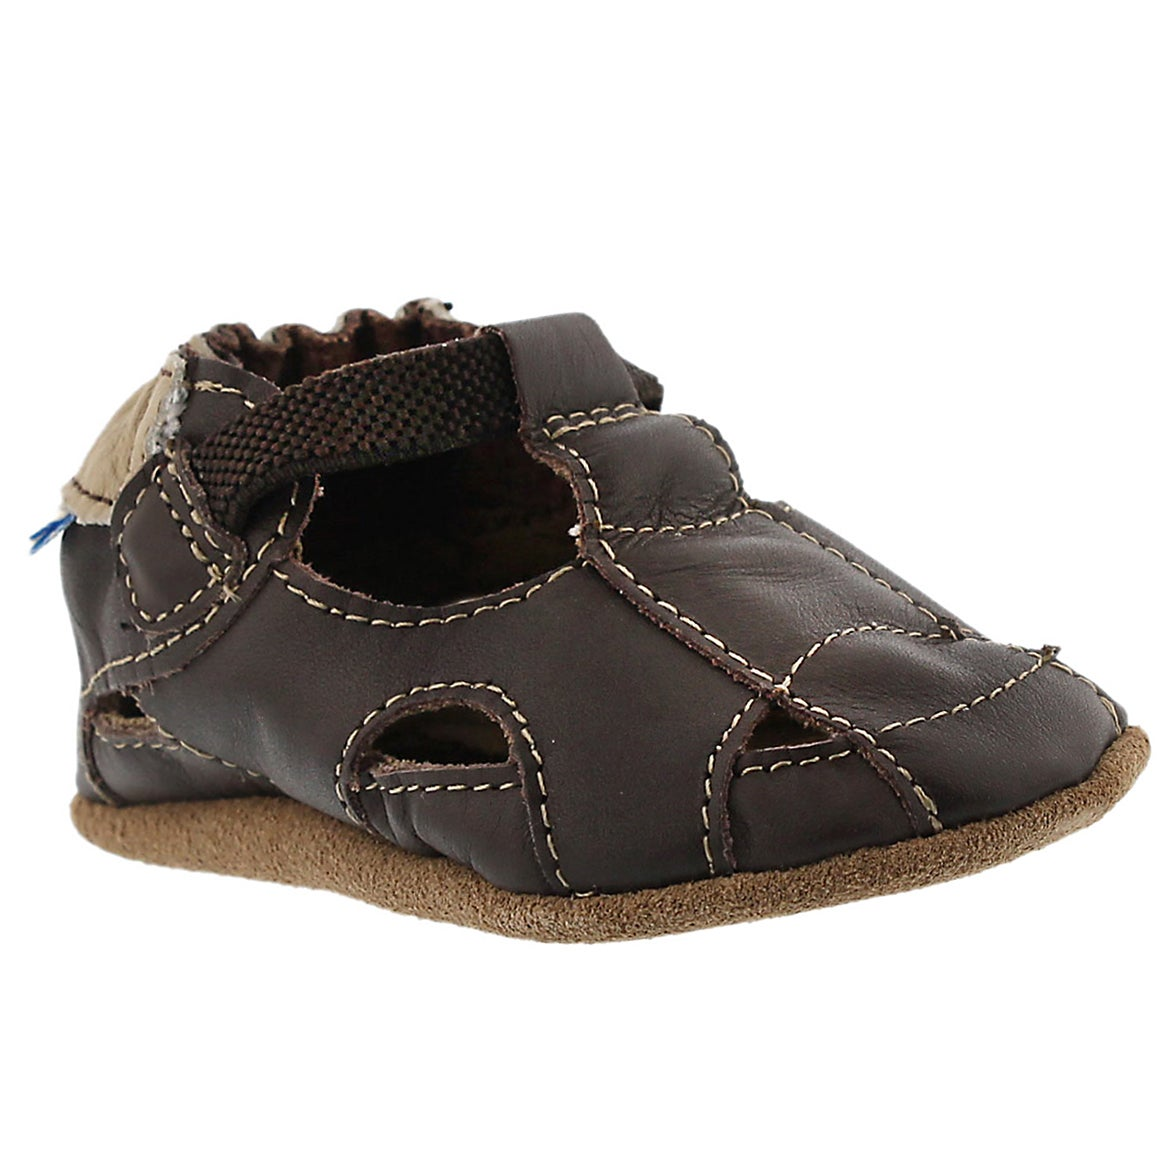 Infants' FISHERMAN SANDAL brown soft sole slippers